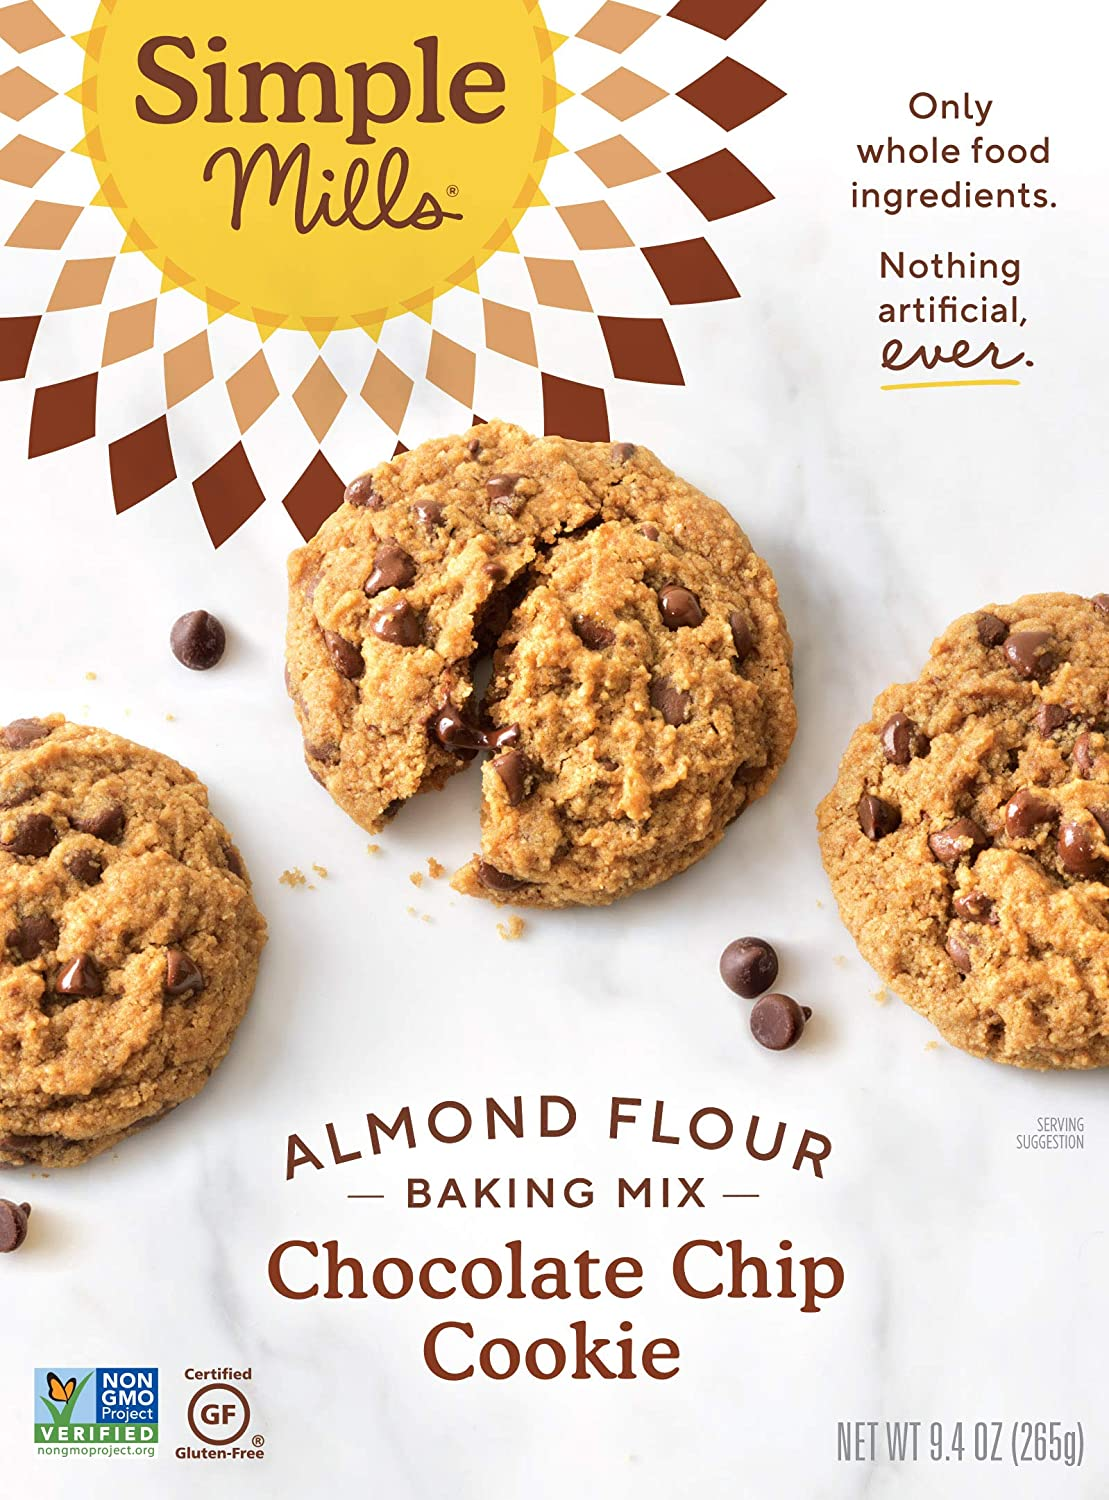 Simple Mills Almond Flour Baking Mix, Gluten Free Chocolate Chip Cookie Dough Mix, Made with whole foods, (Packaging May Vary) (170967-71714)